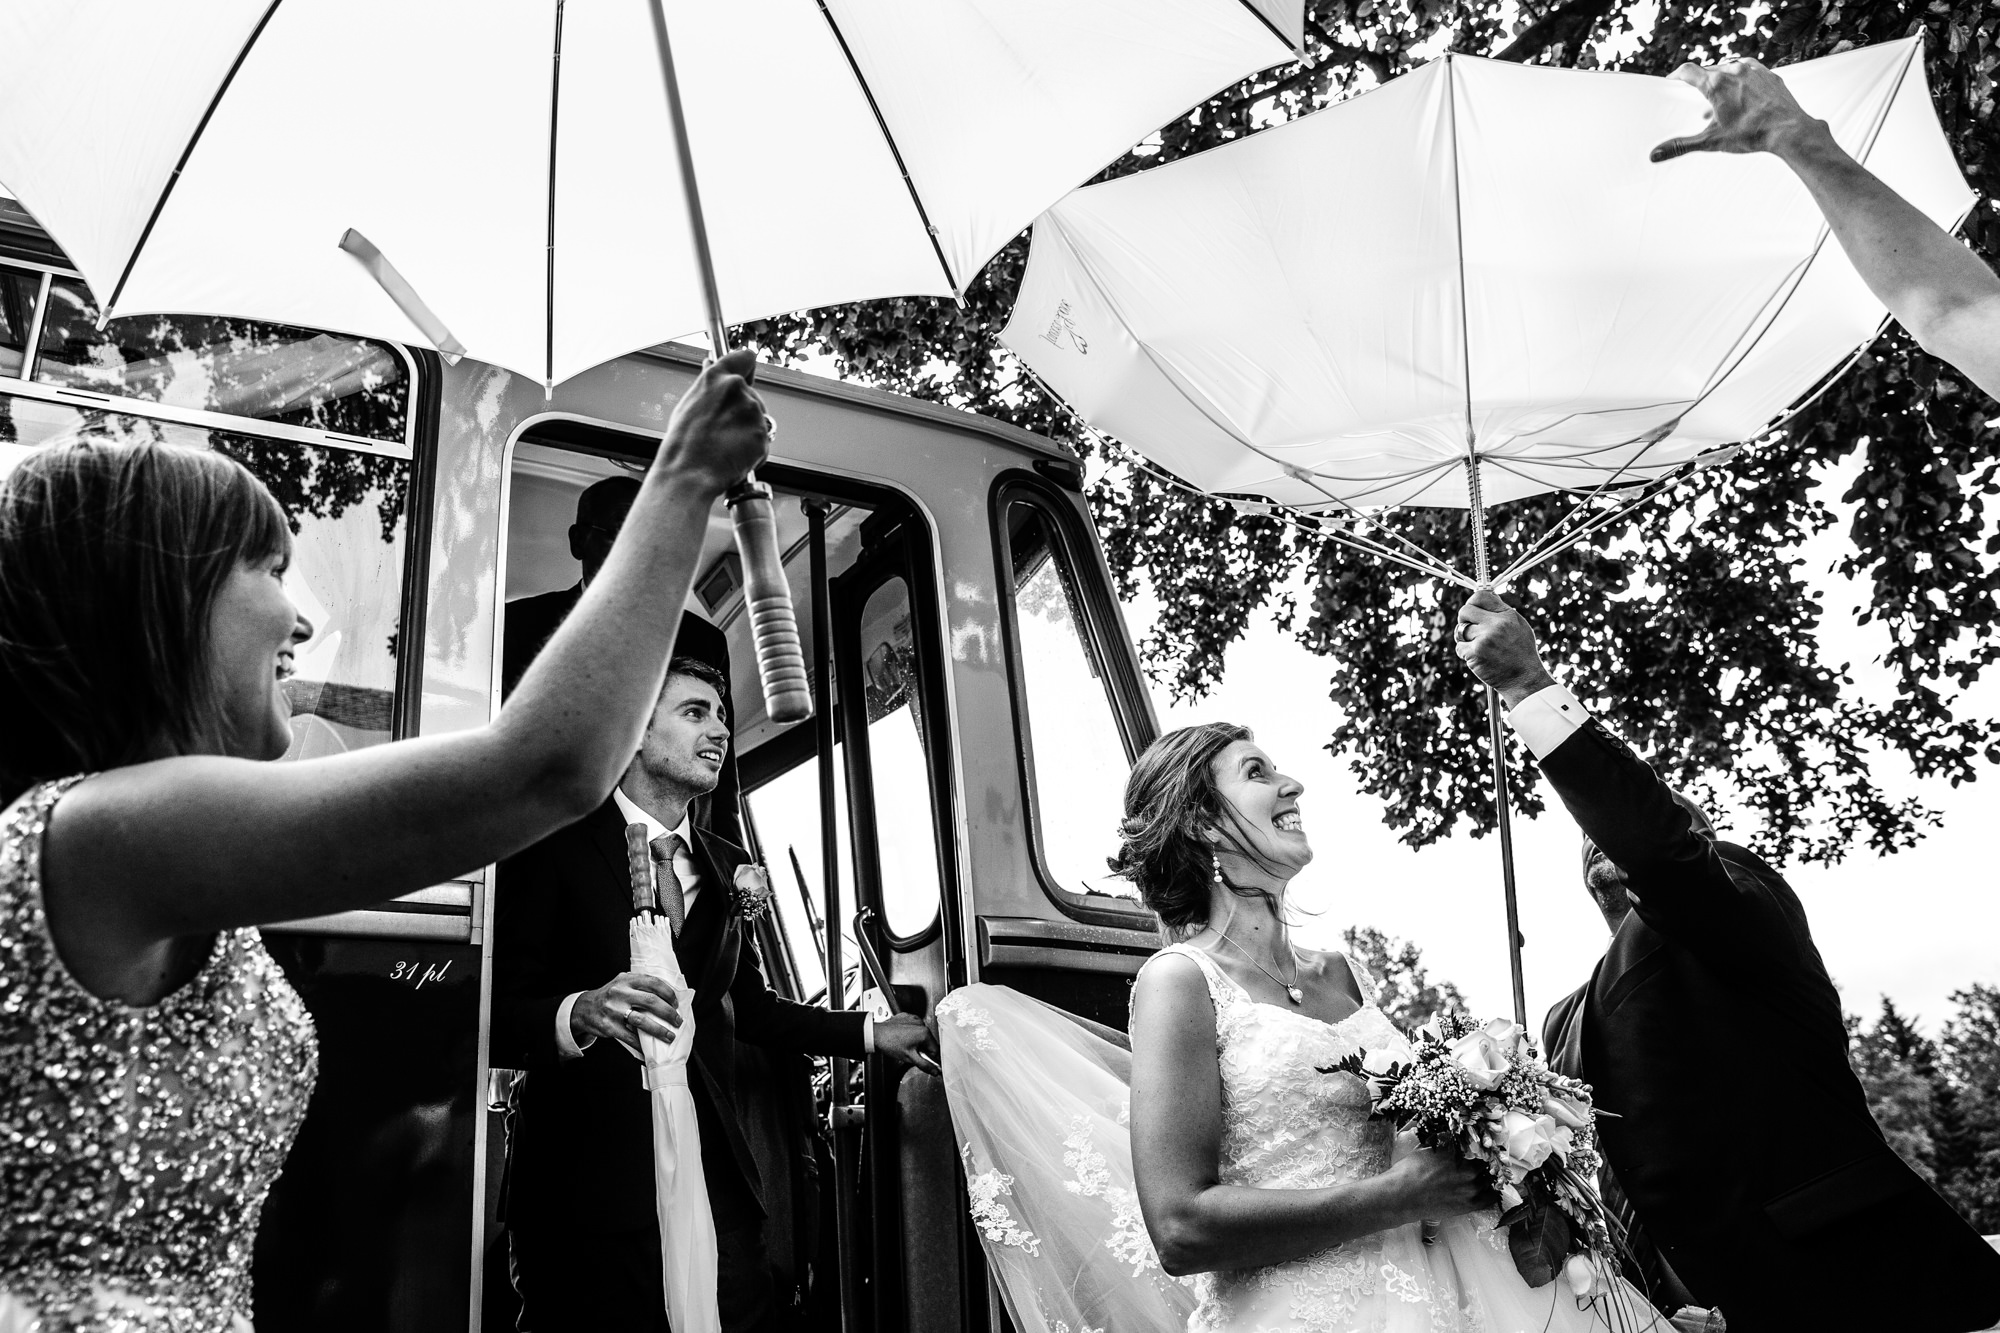 White umbrellas turned inside out, black and white photo by Yves Schepers, Belgium wedding photographers